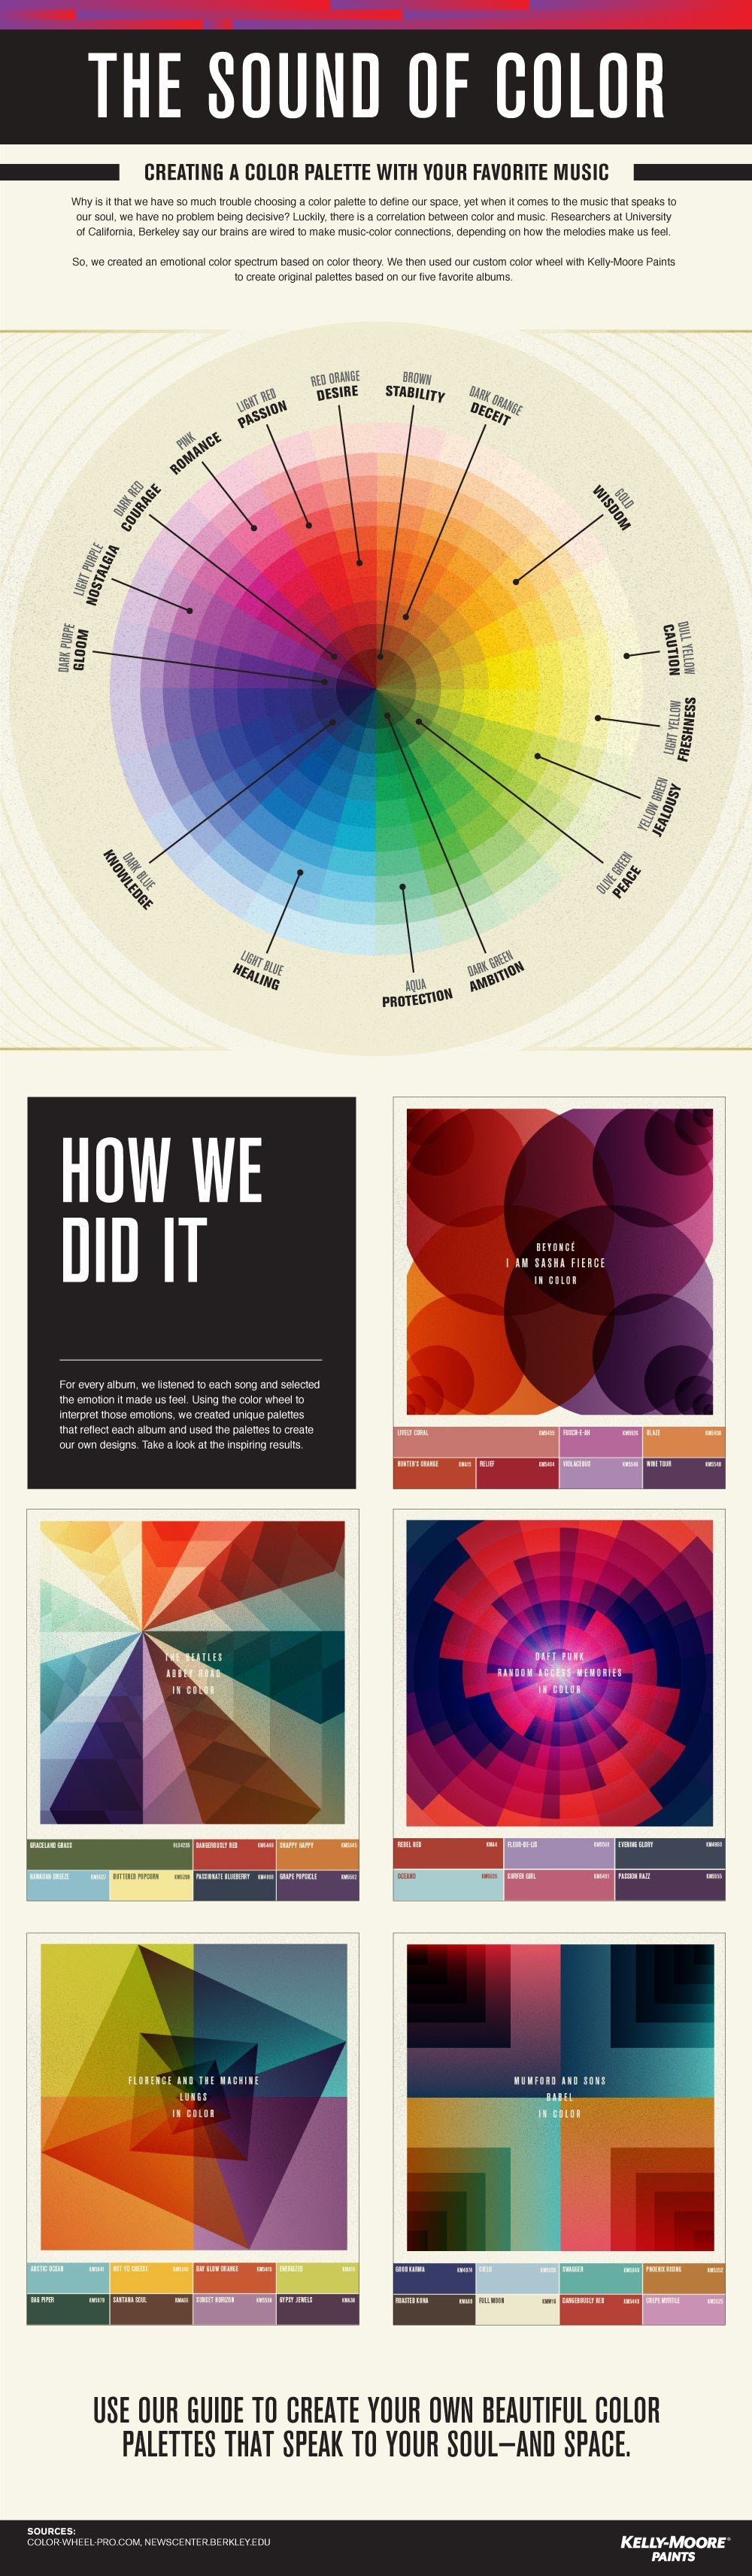 The Sound of Color #infographic